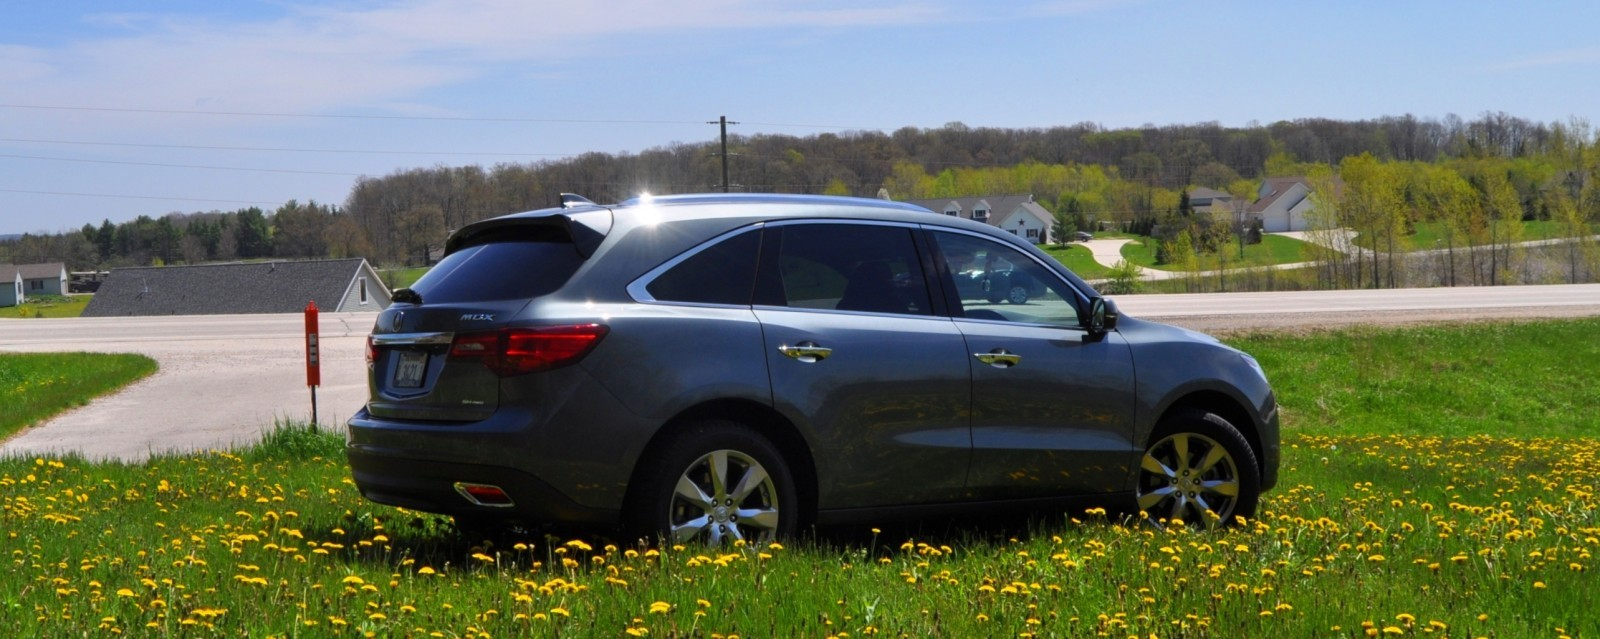 Road Test Review - 2014 Acura MDX SH-AWD Is Premium and Posh 7-Seat Cruiser